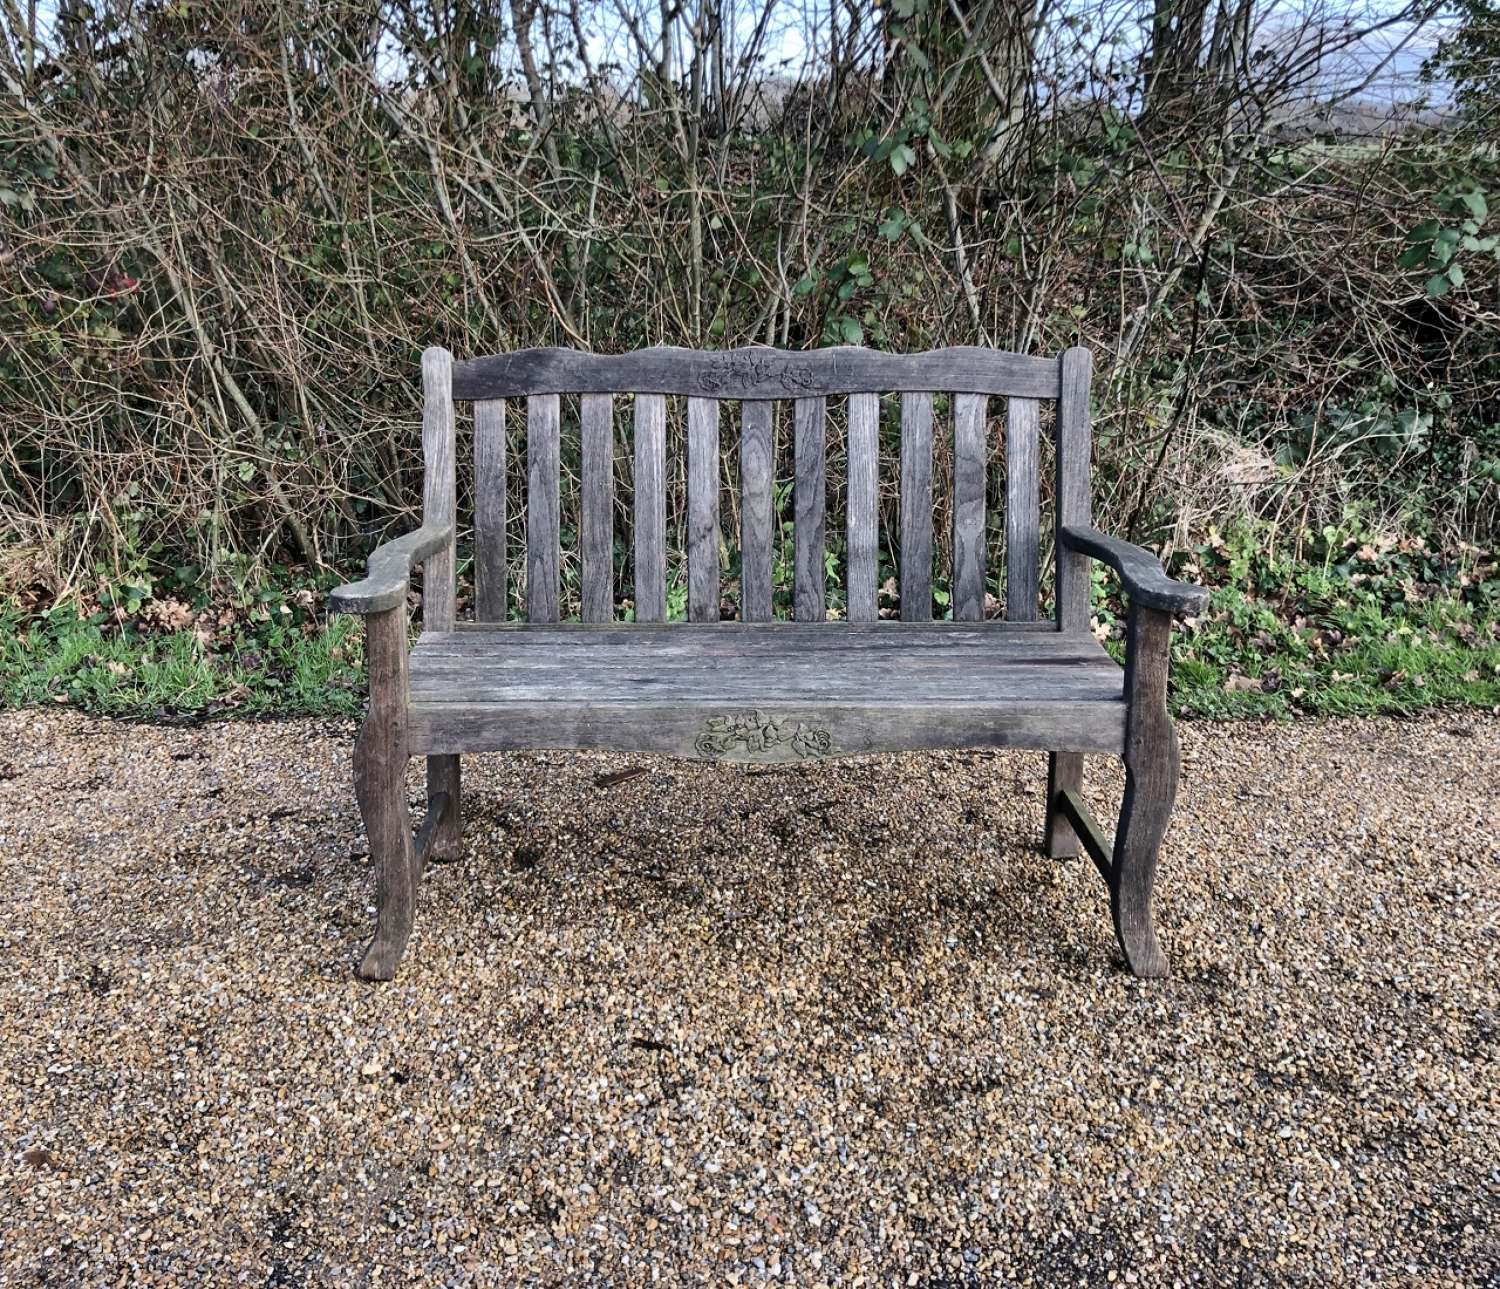 Bench with Decorative Carvings